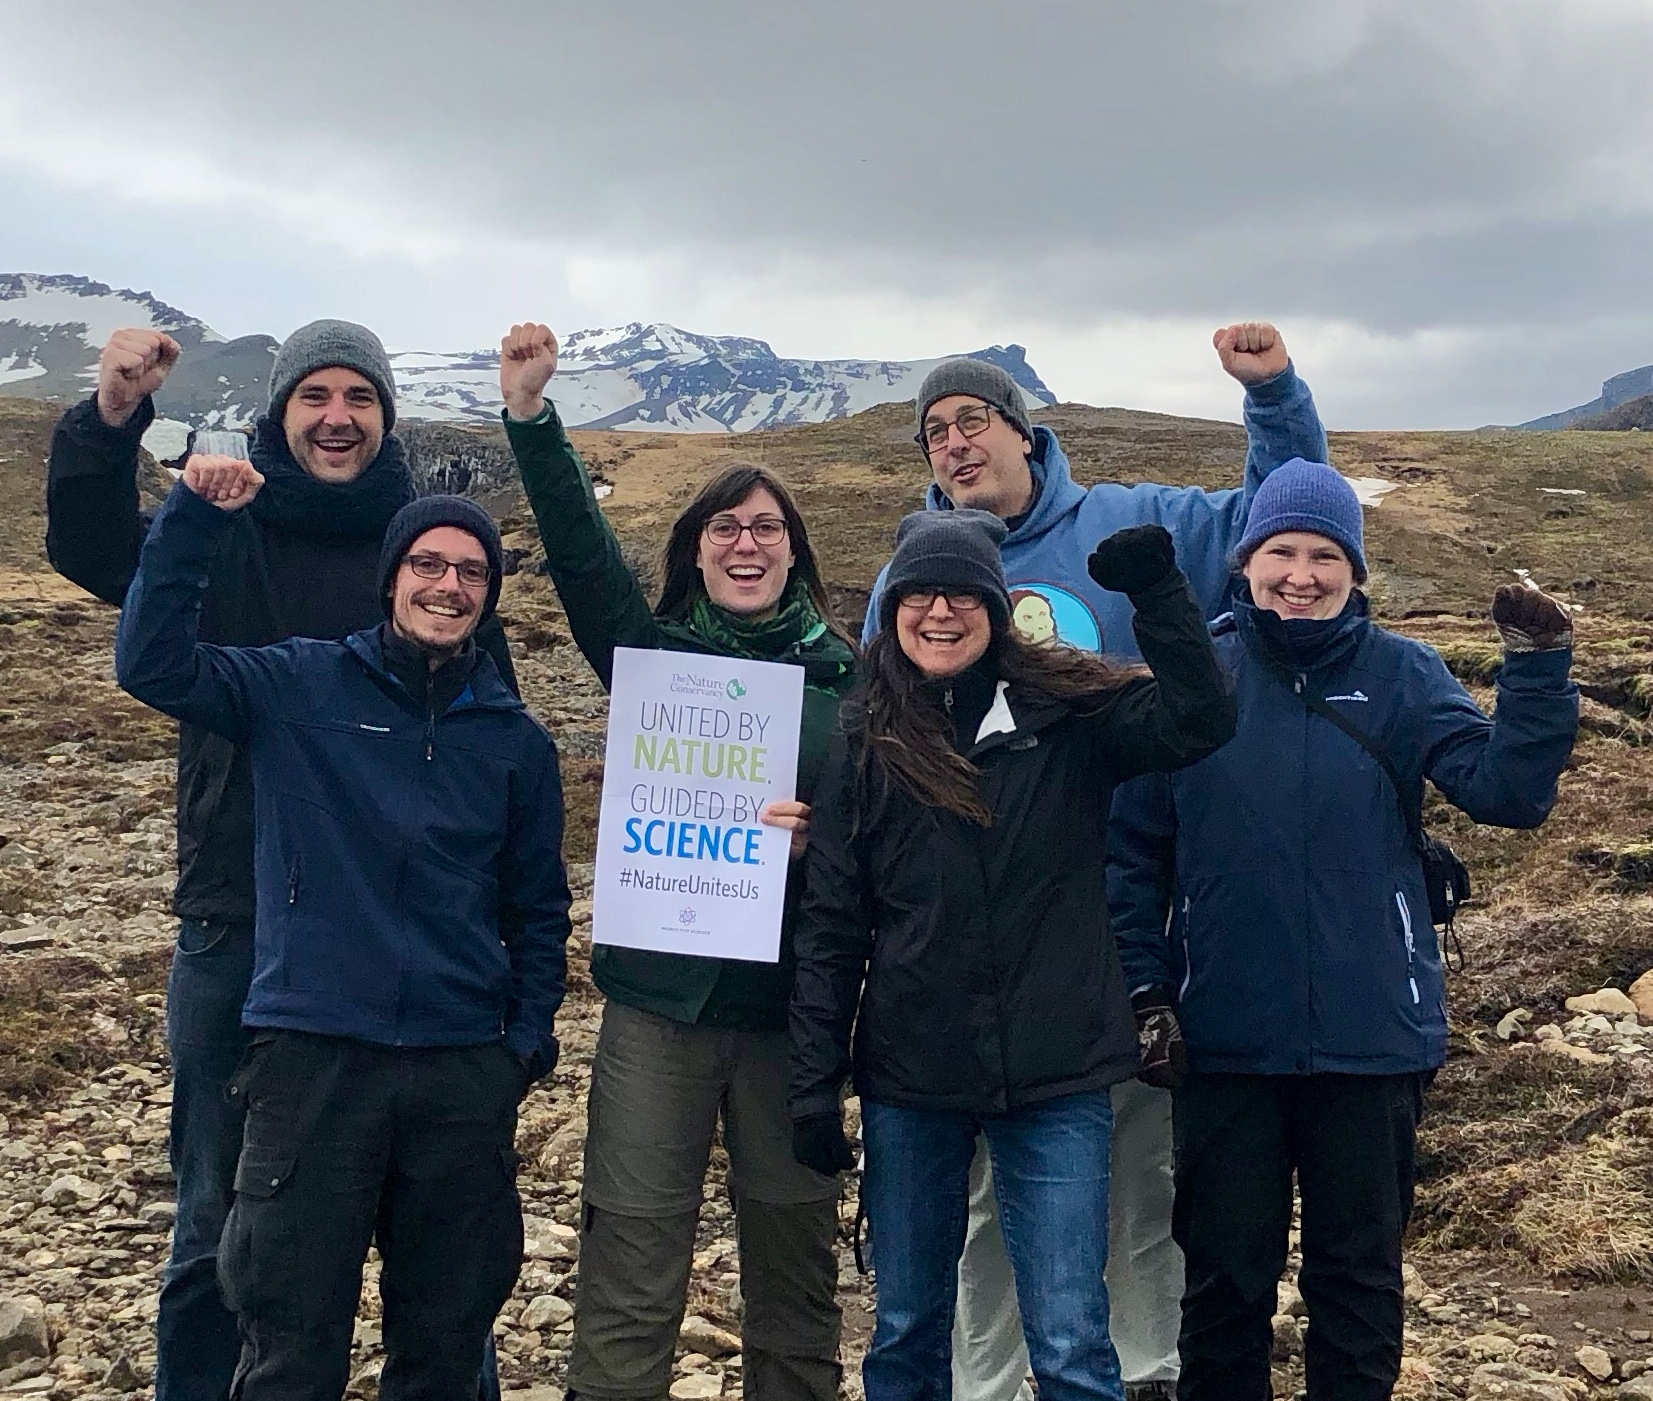 Our celebration of science spanned from WA to Iceland!